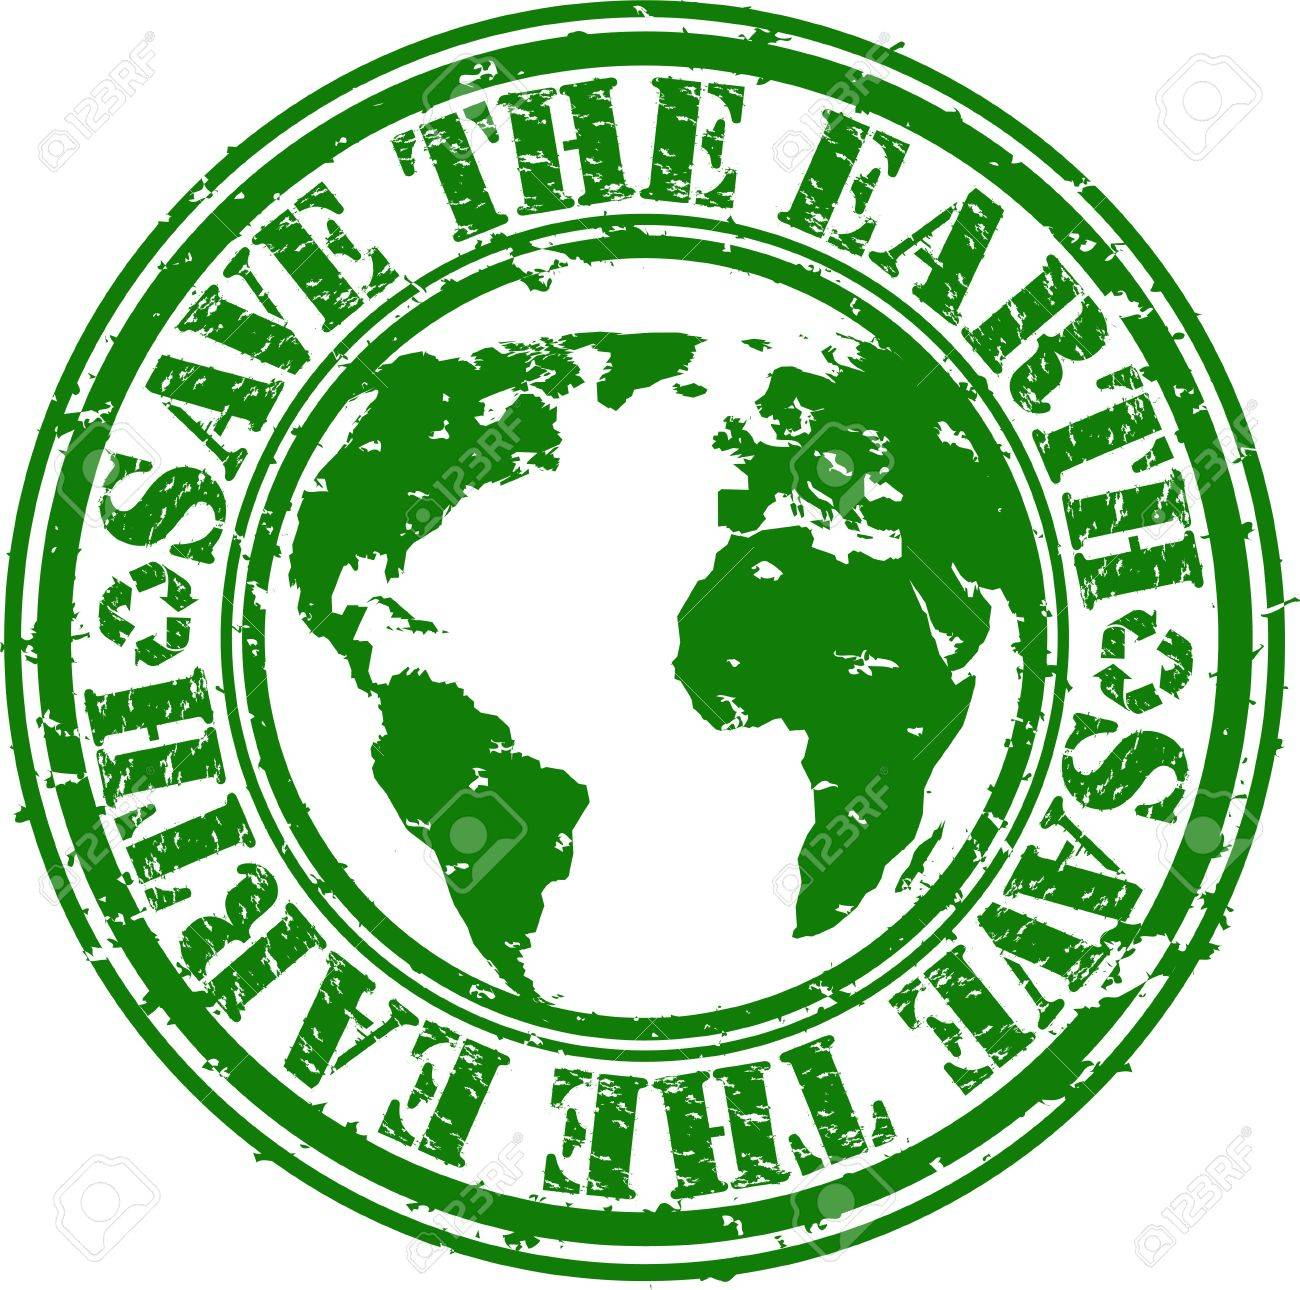 Grunge save the earth rubber stamp, vector illustration Stock Vector - 13109759